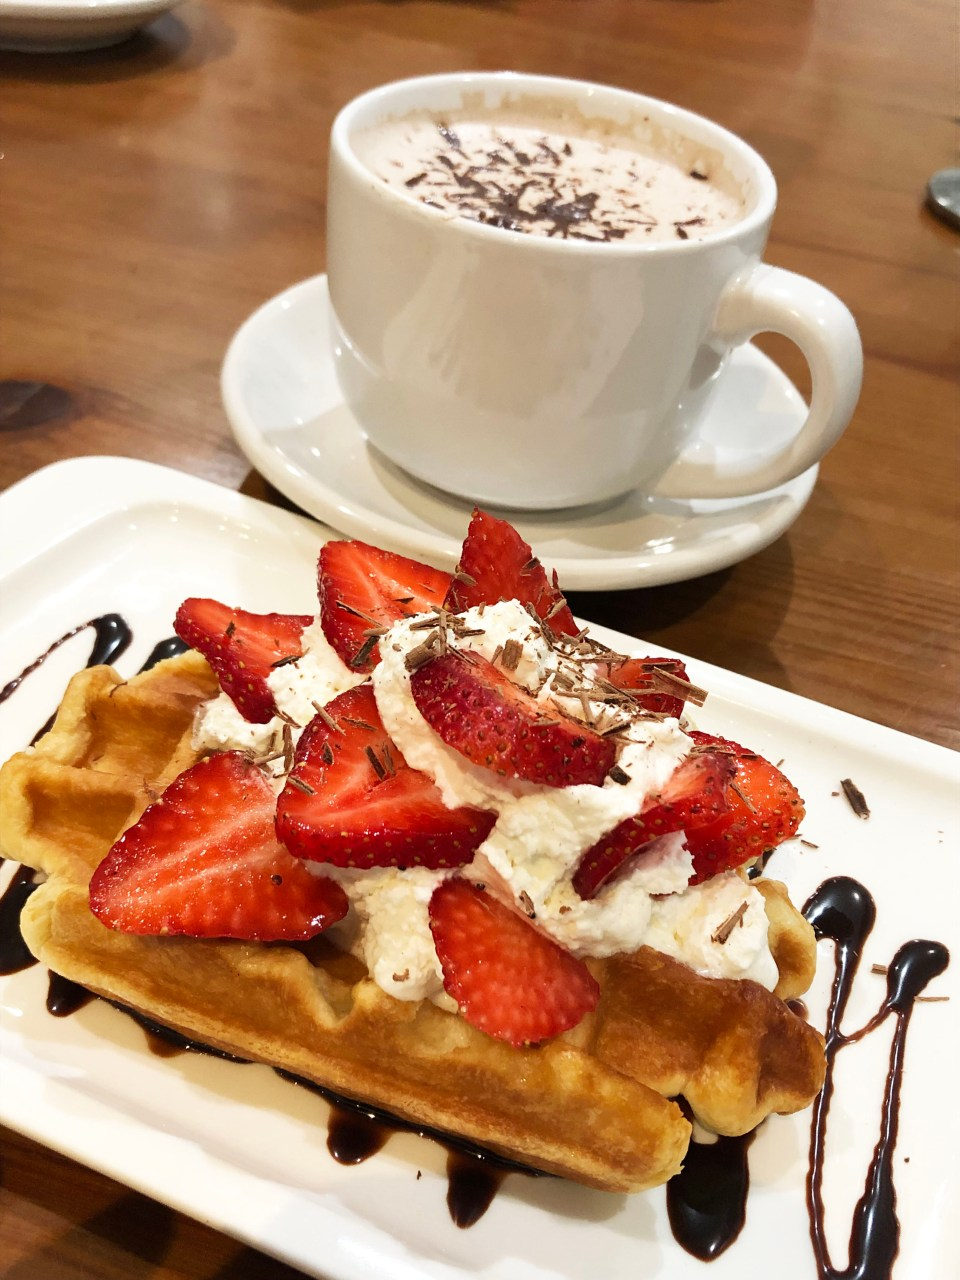 Fueling Station - Strawberry Waffle + Hot chocolate